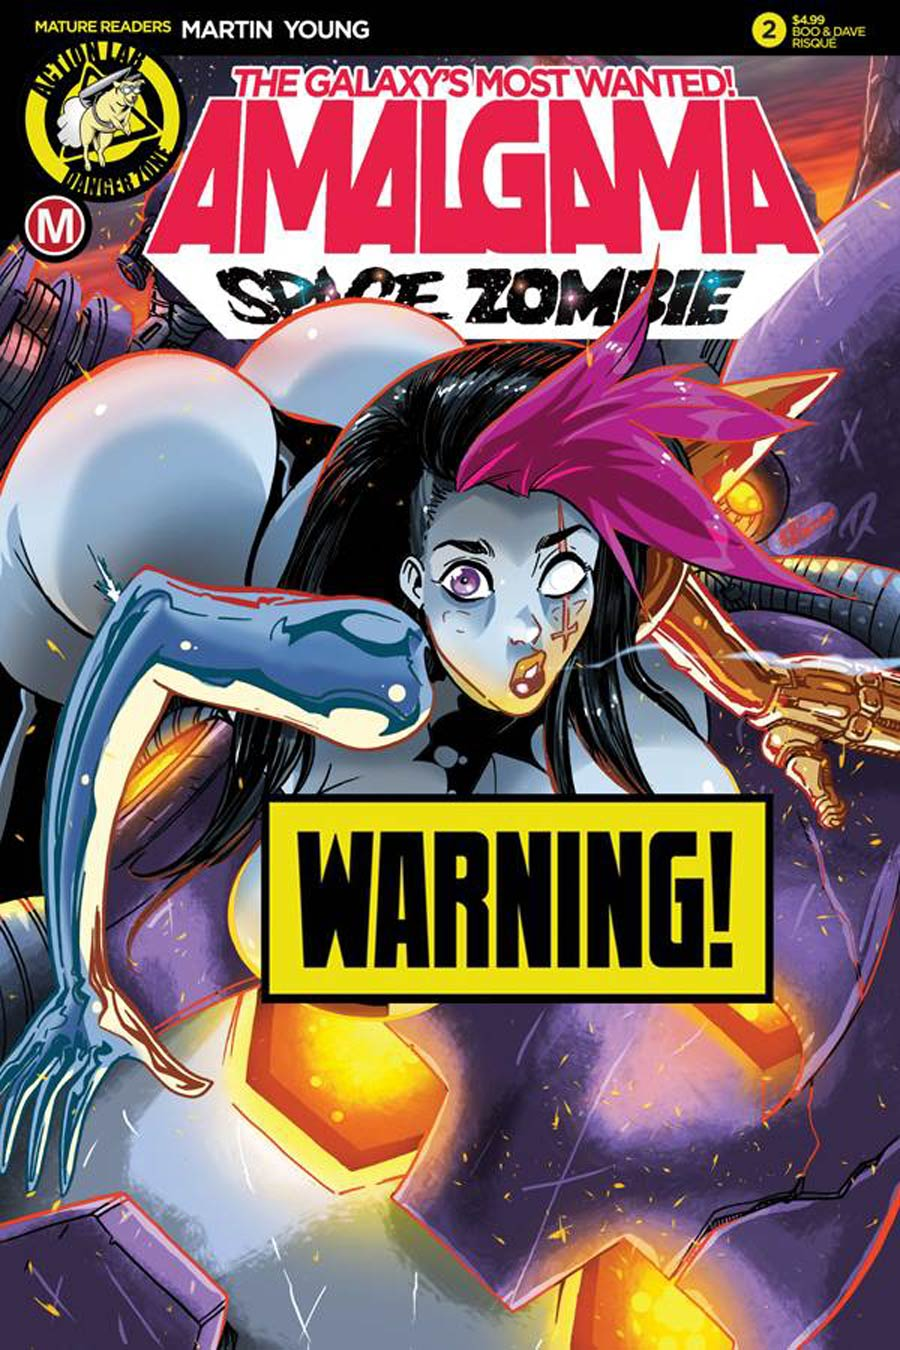 Amalgama Space Zombie Galaxys Most Wanted #2 Cover D Variant Boo Rudetoons Risque Cover